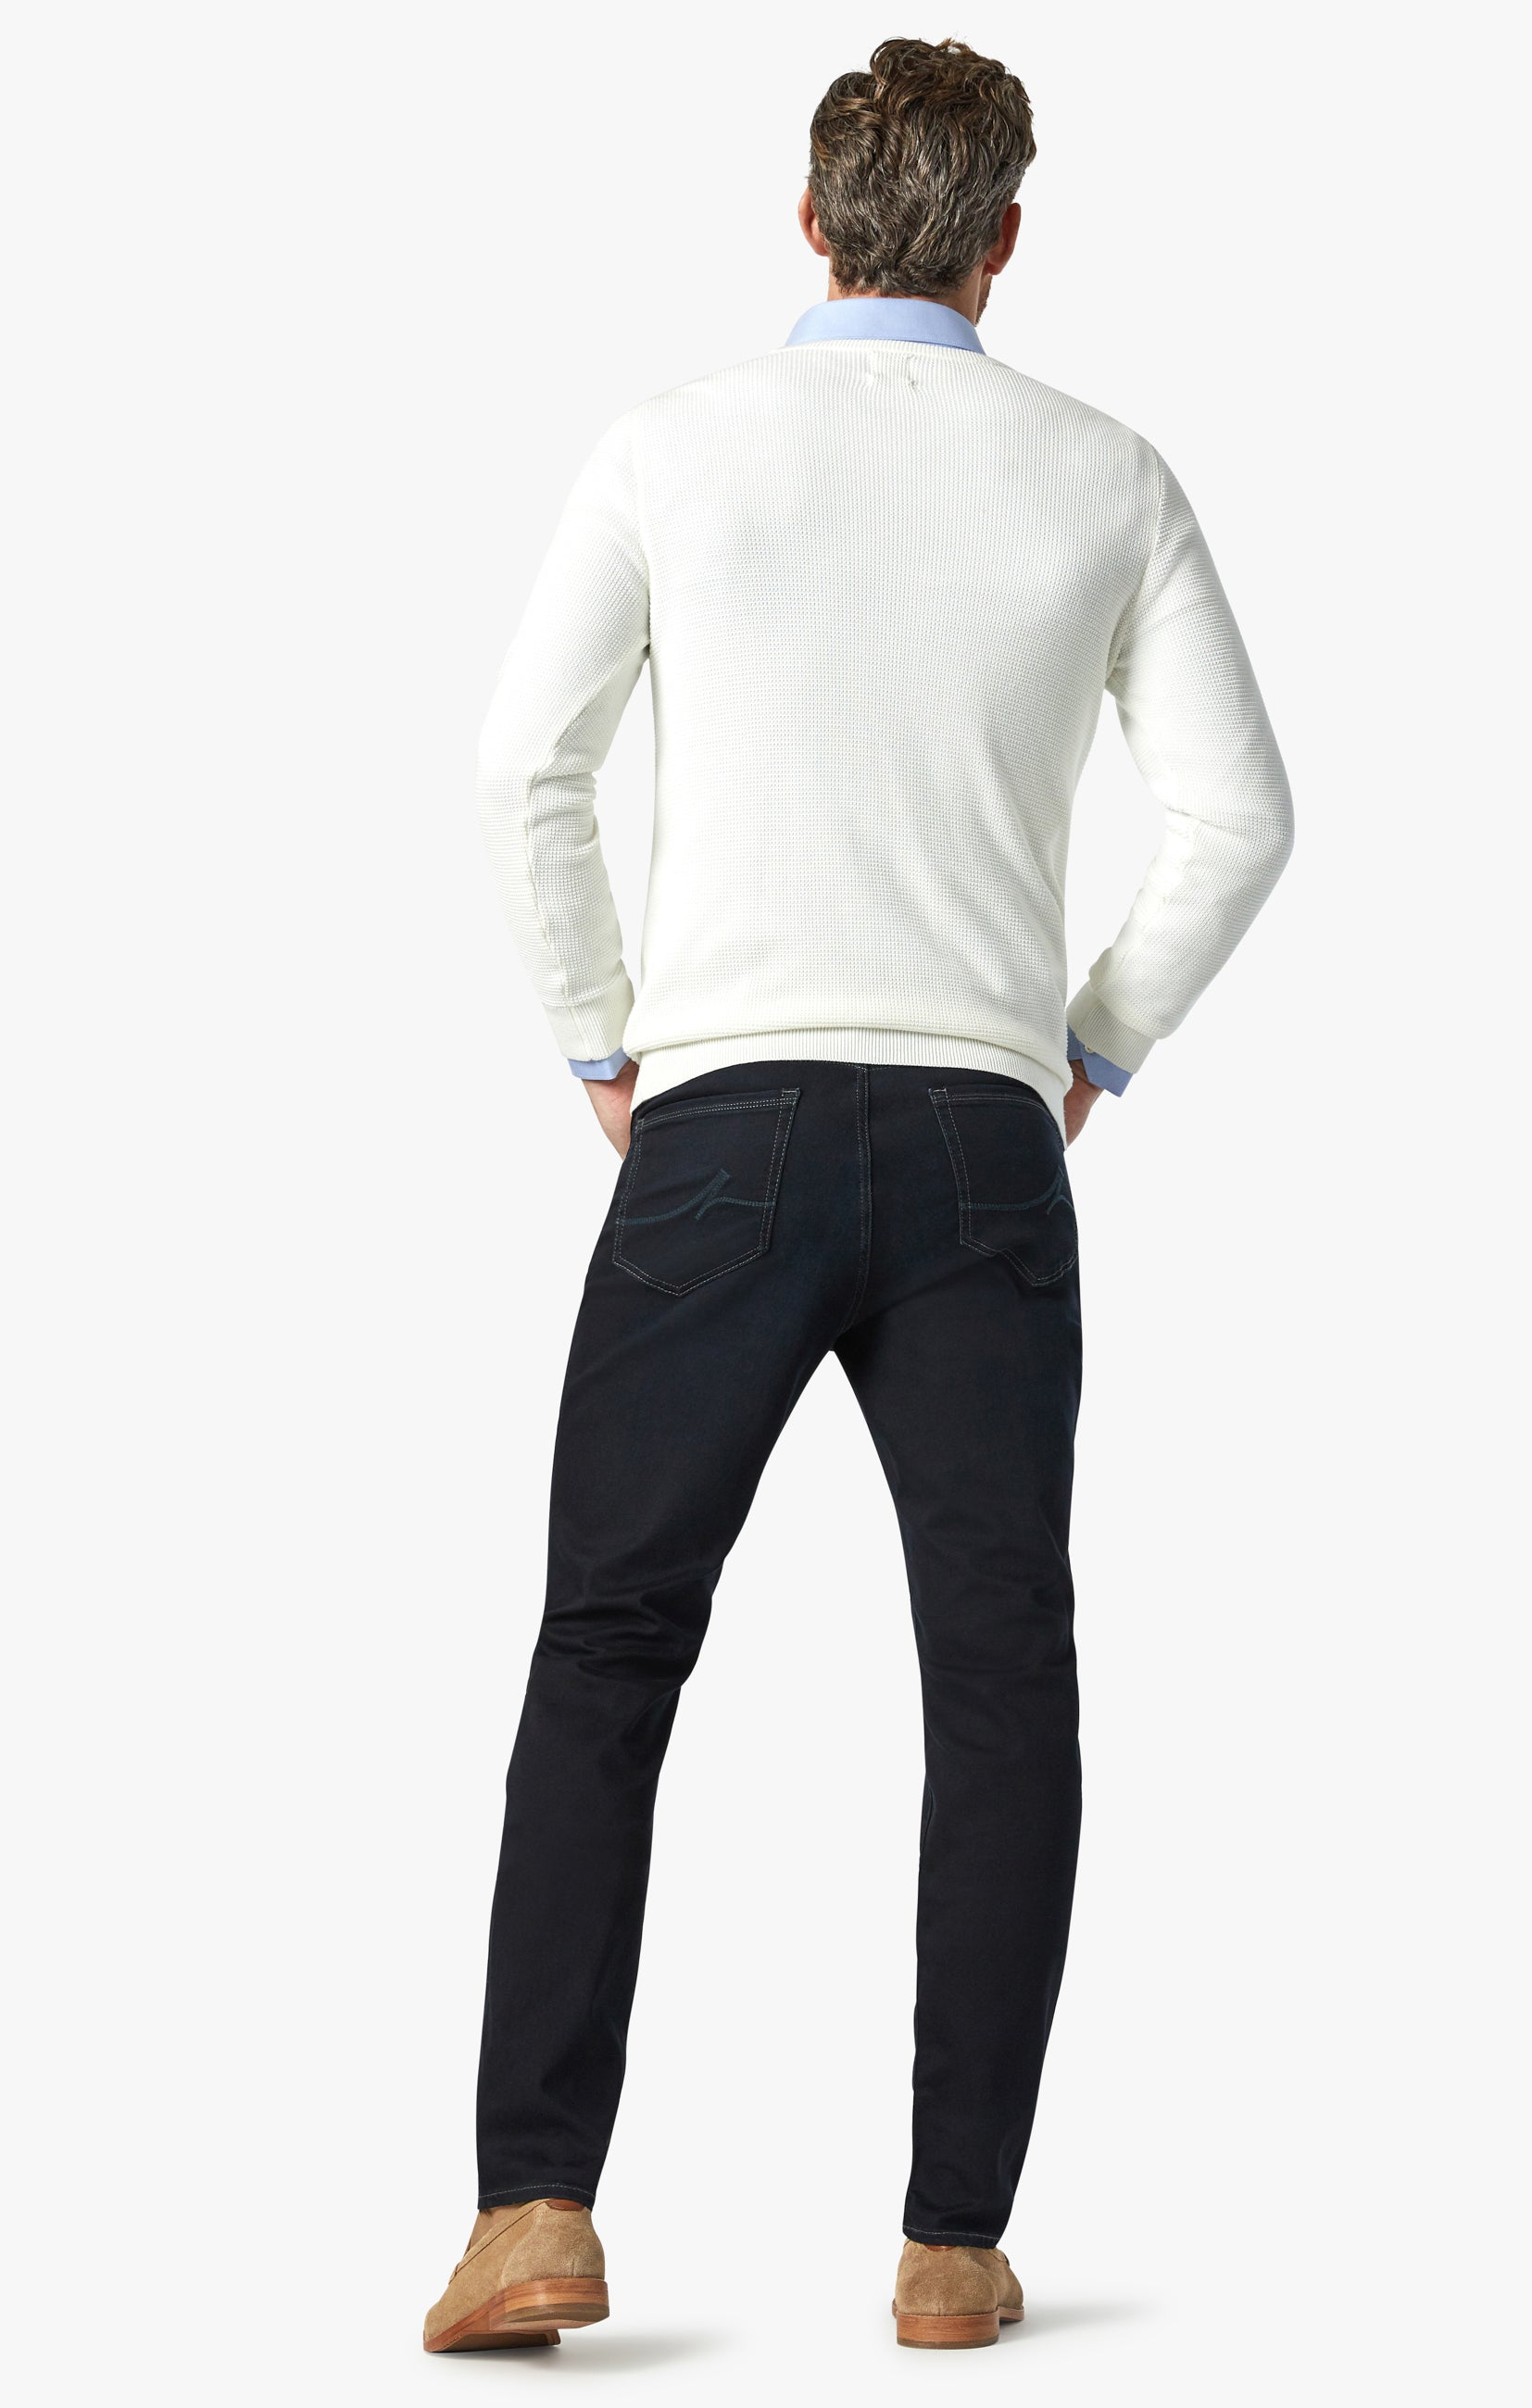 Champ Athletic Fit Jeans In Midnight Austin Image 6